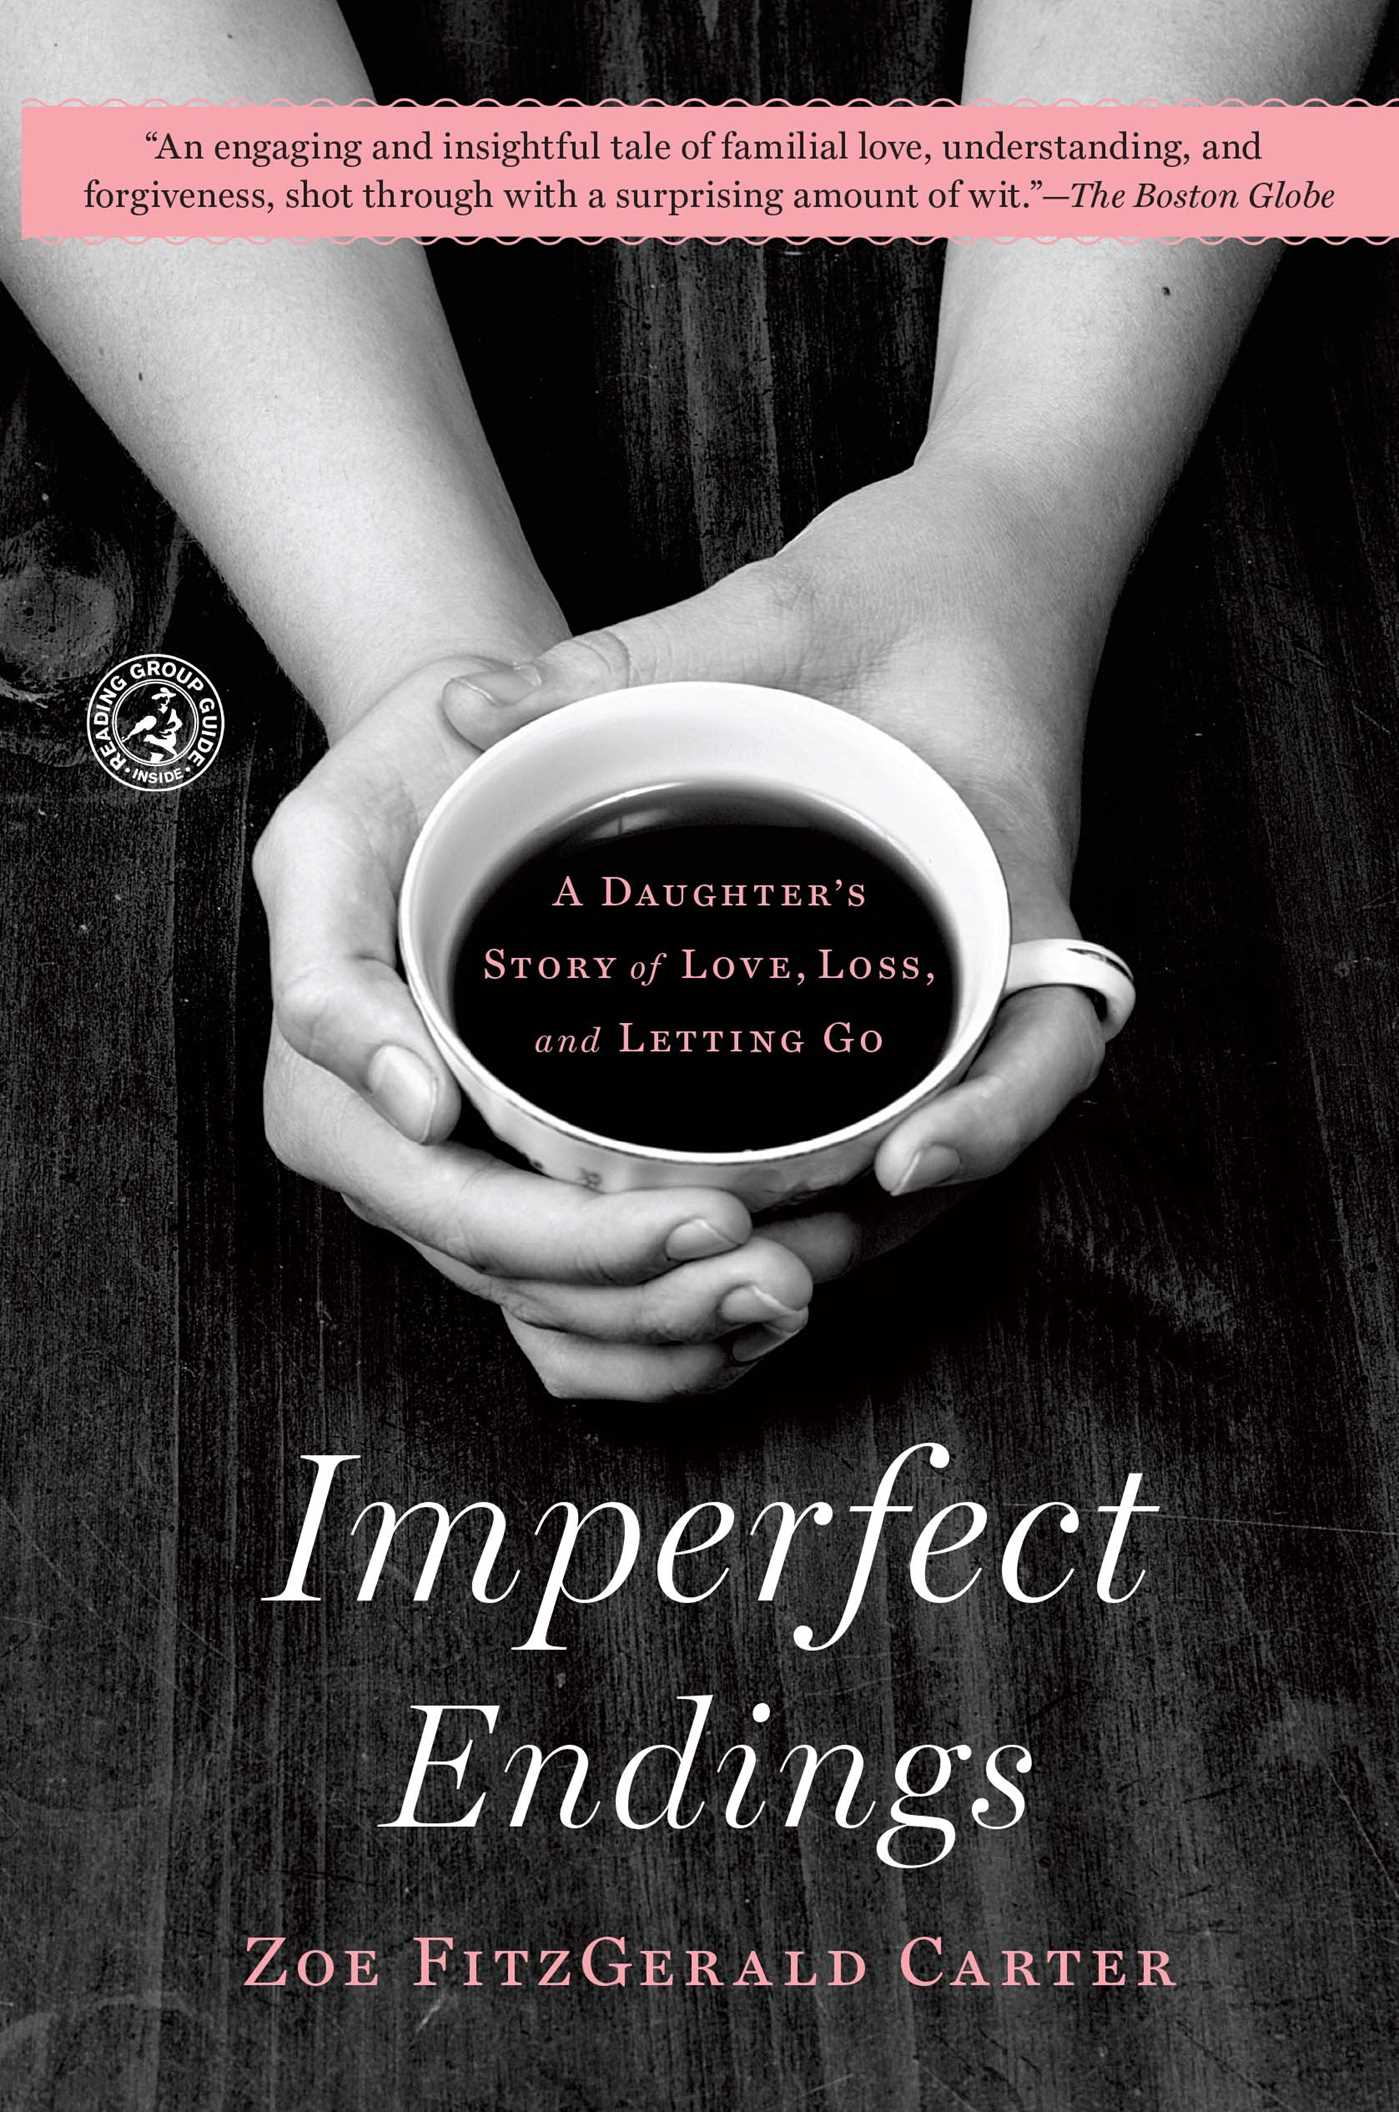 Imperfect-endings-9781439154212_hr